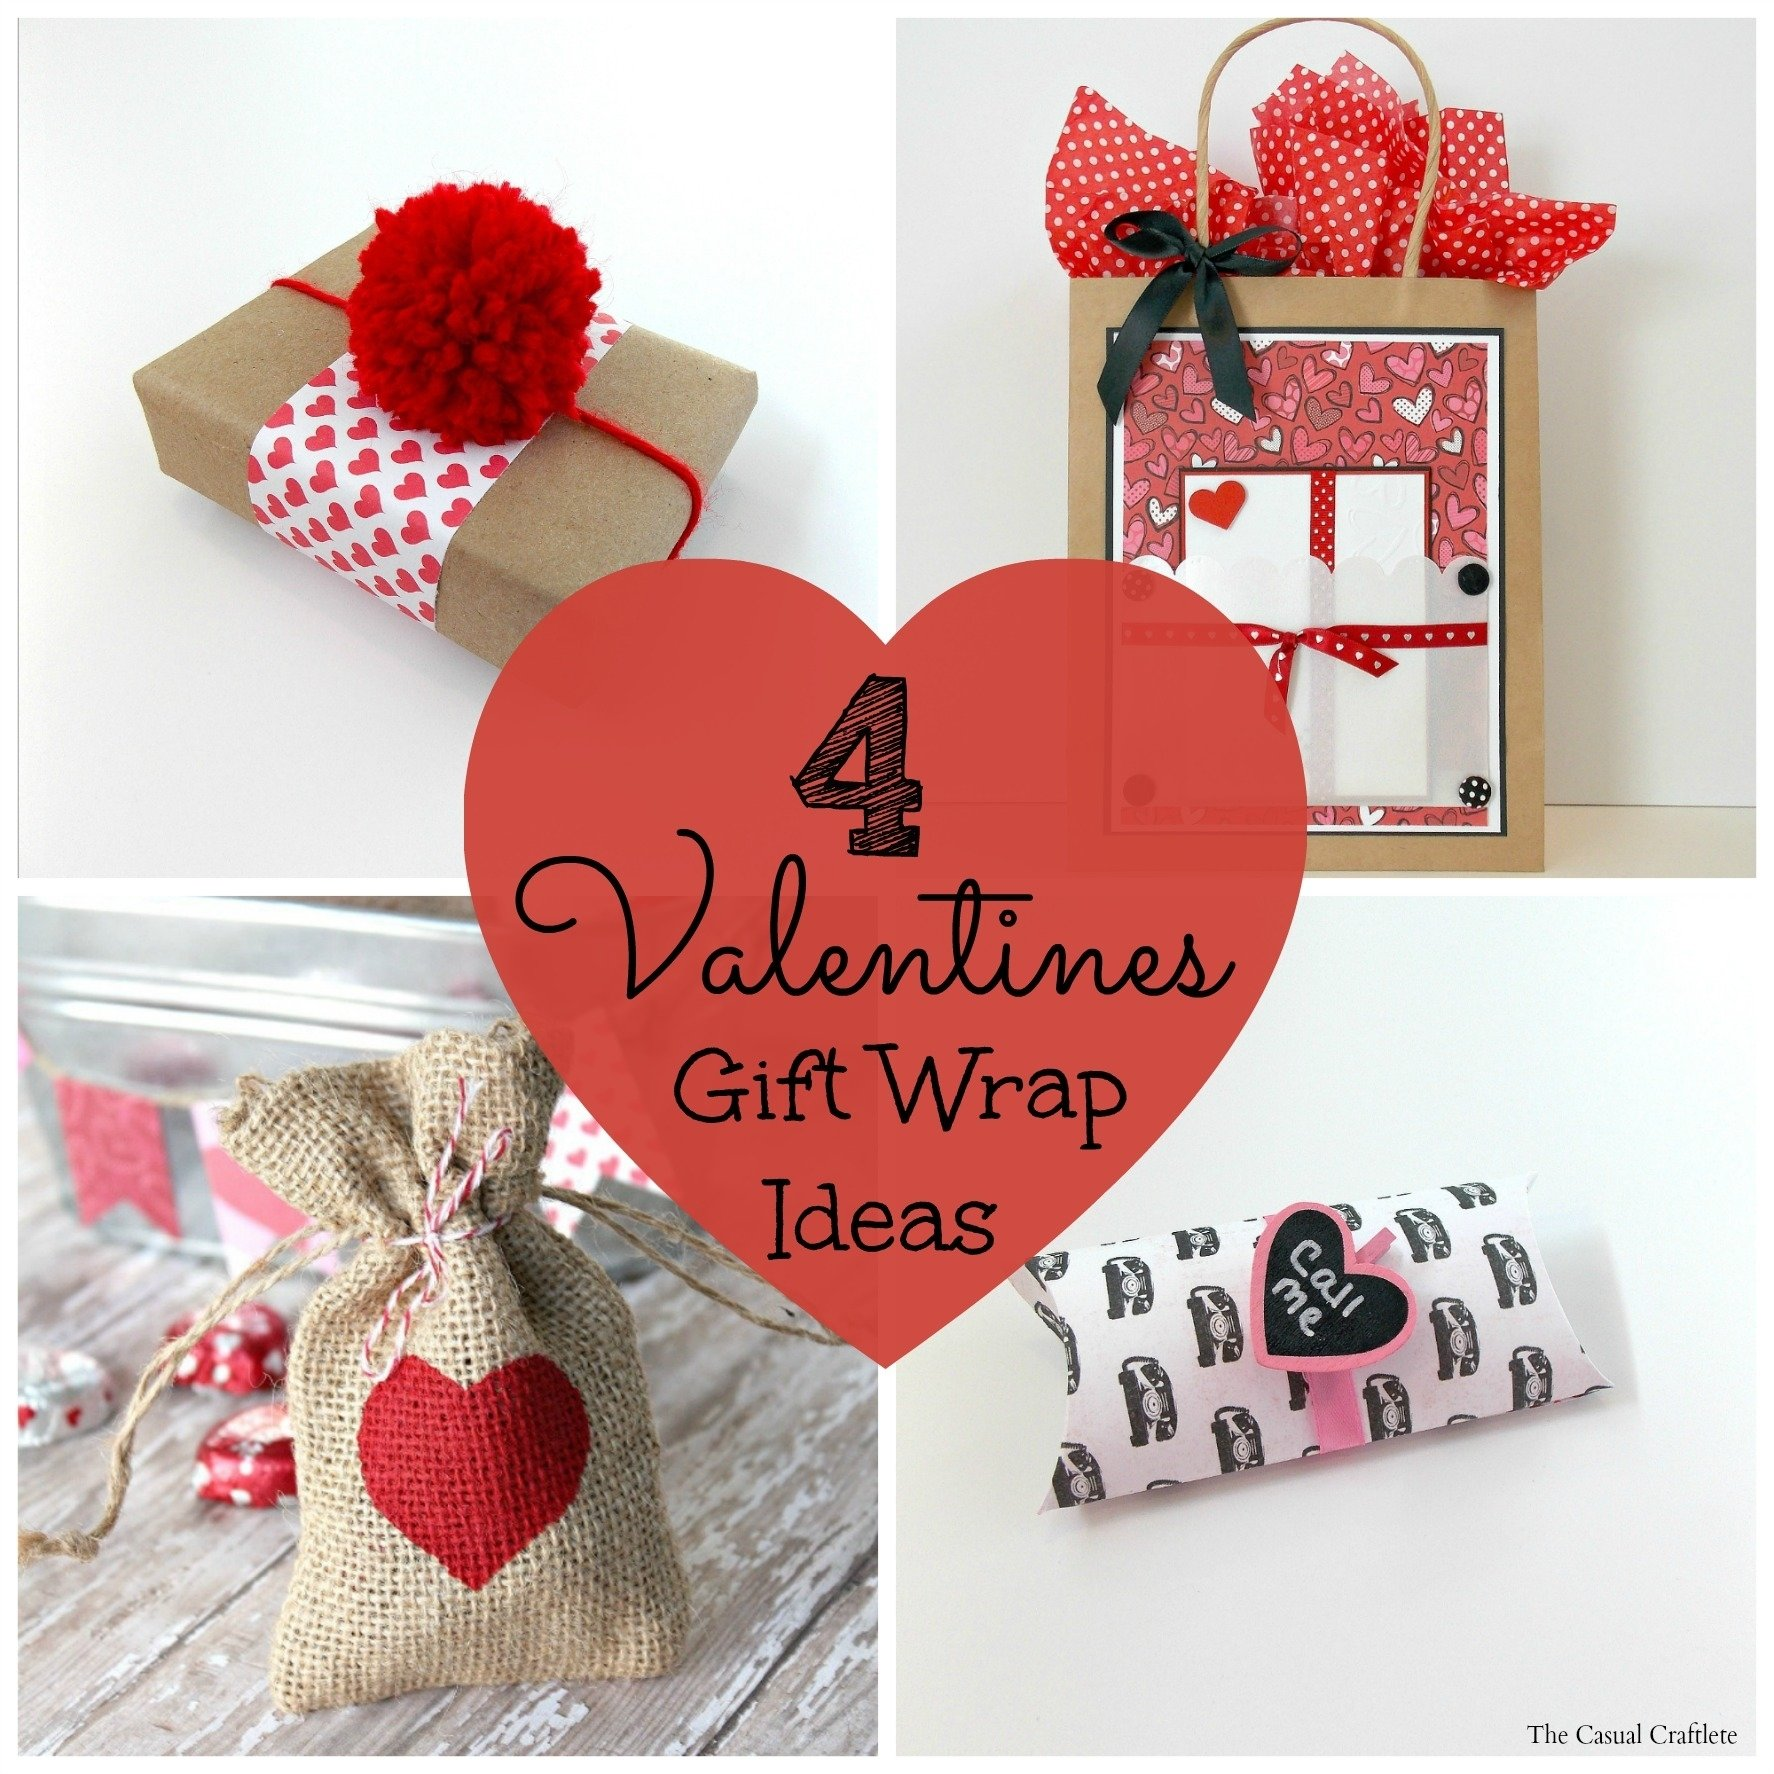 10 Nice Cute Valentines Day Gift Ideas valentines day gift ideas for girlfriend 2018 new ideas 20 2021